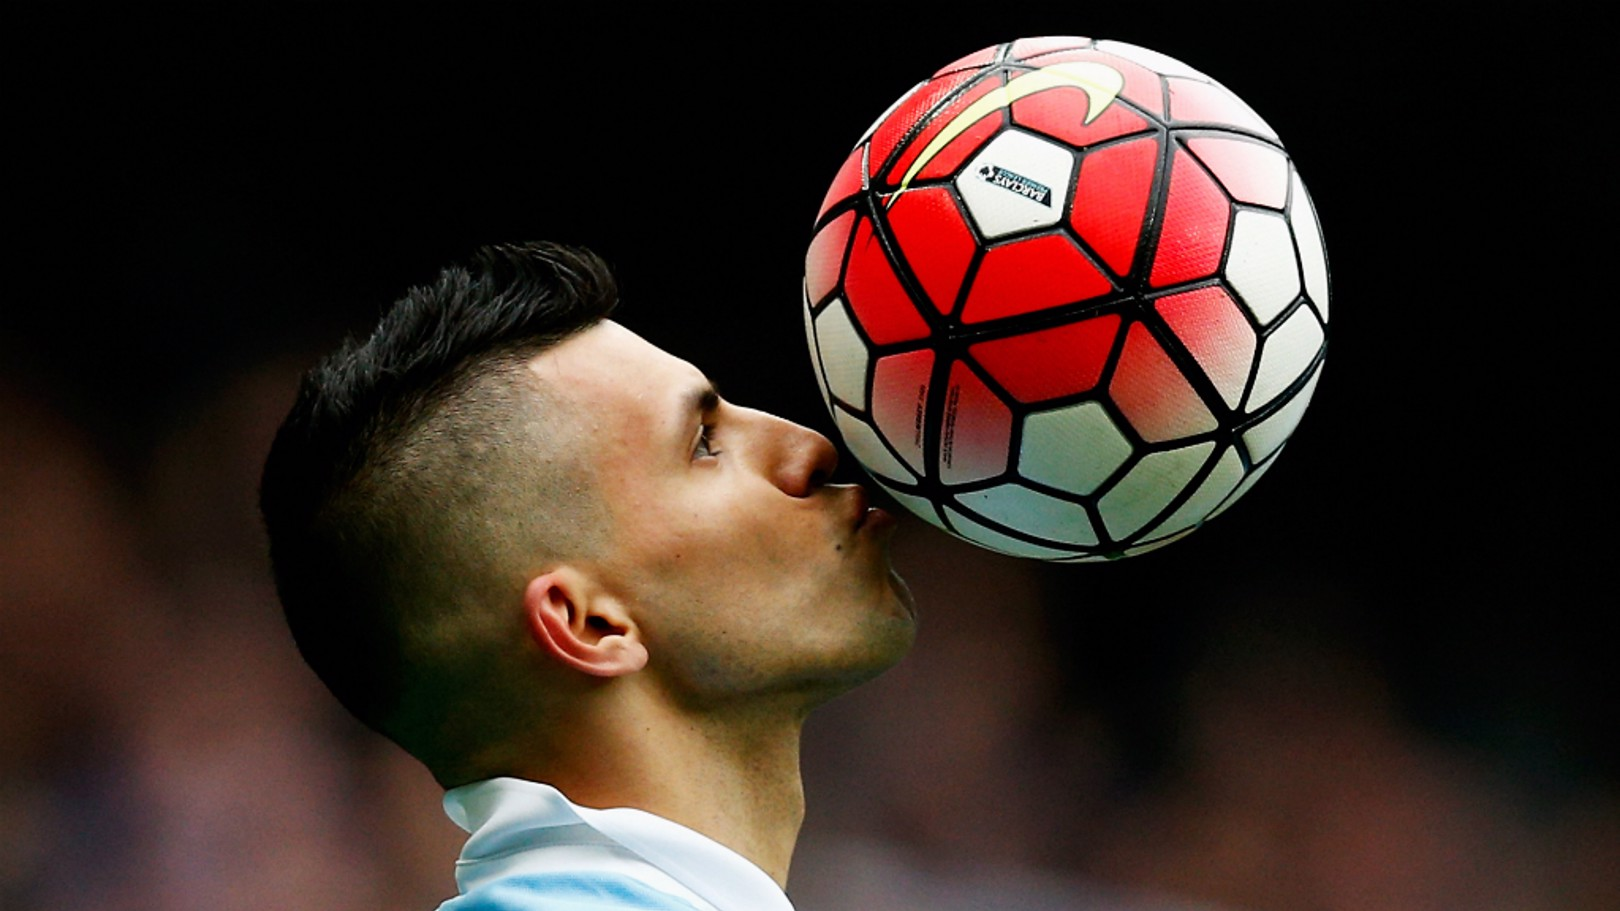 SIX AND THE CITY: Sergio Aguero is often on the scoresheet when City net six...